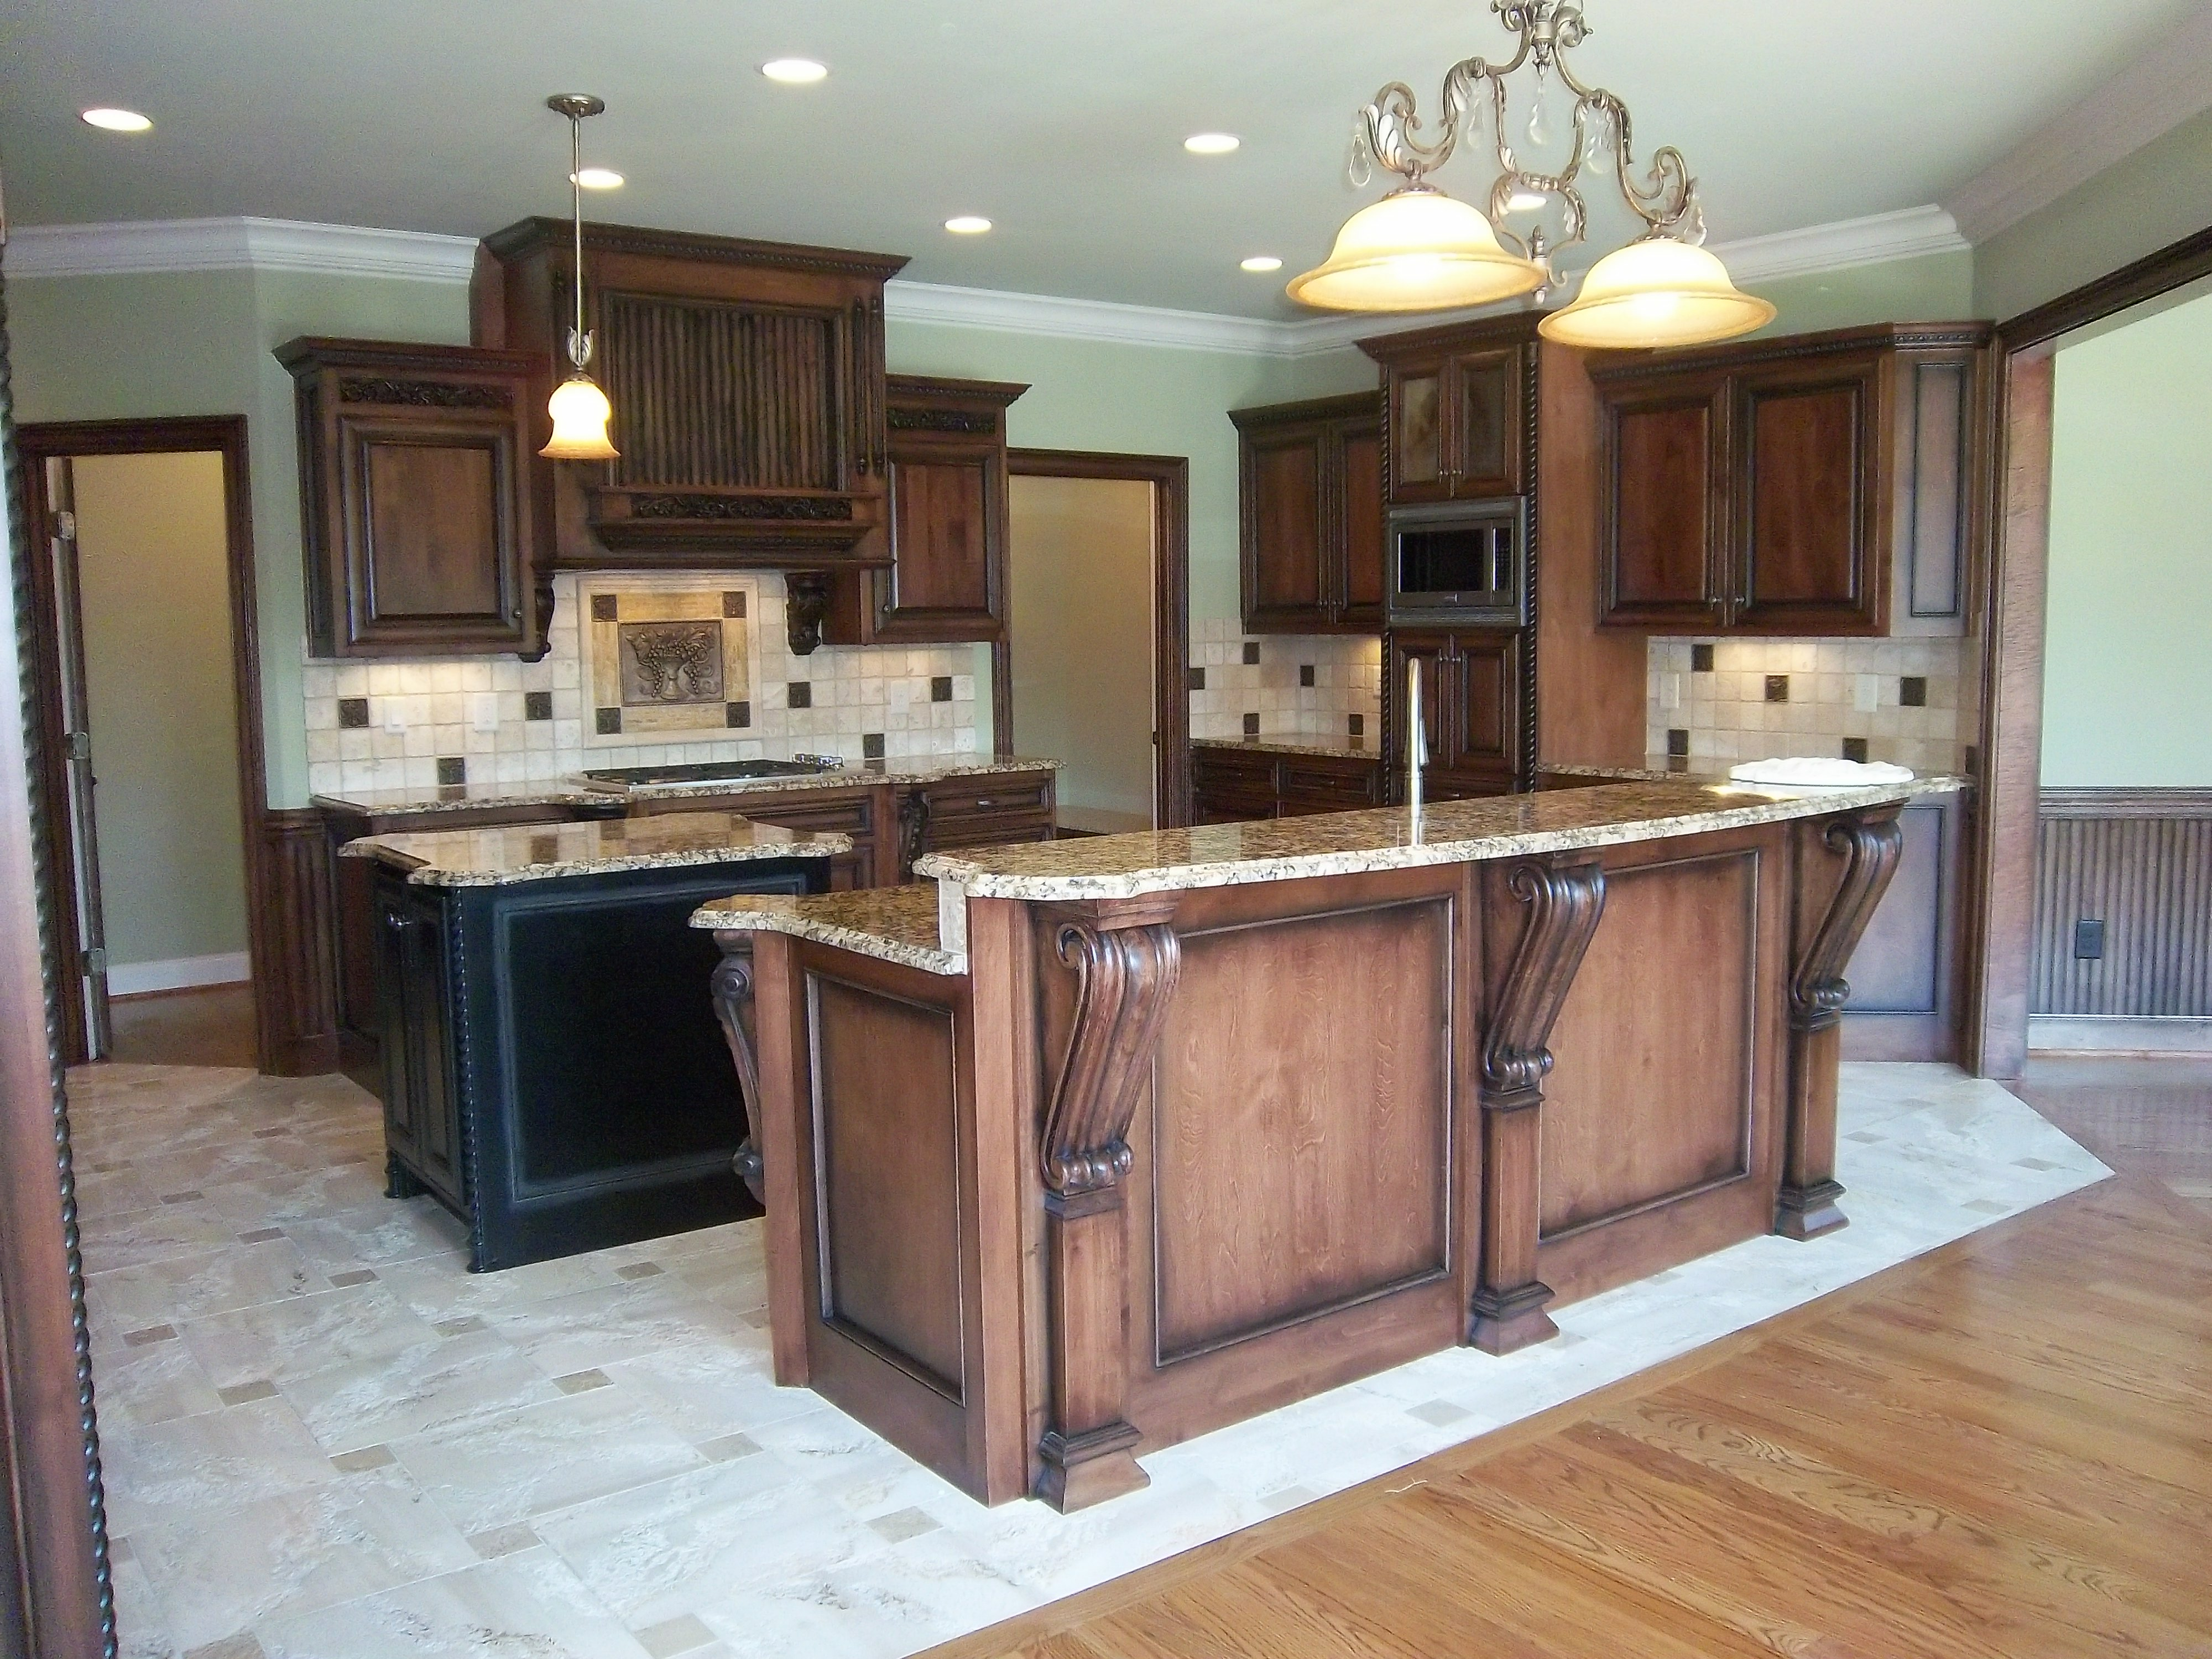 Kitchen Remodeling Contractor U2013 Lake Oswego, OR Your Kitchen Is The Heart  Of Your Home, Thatu0027s Why Hiring A Licensed Kitchen Remodeling Contractor Is  ...